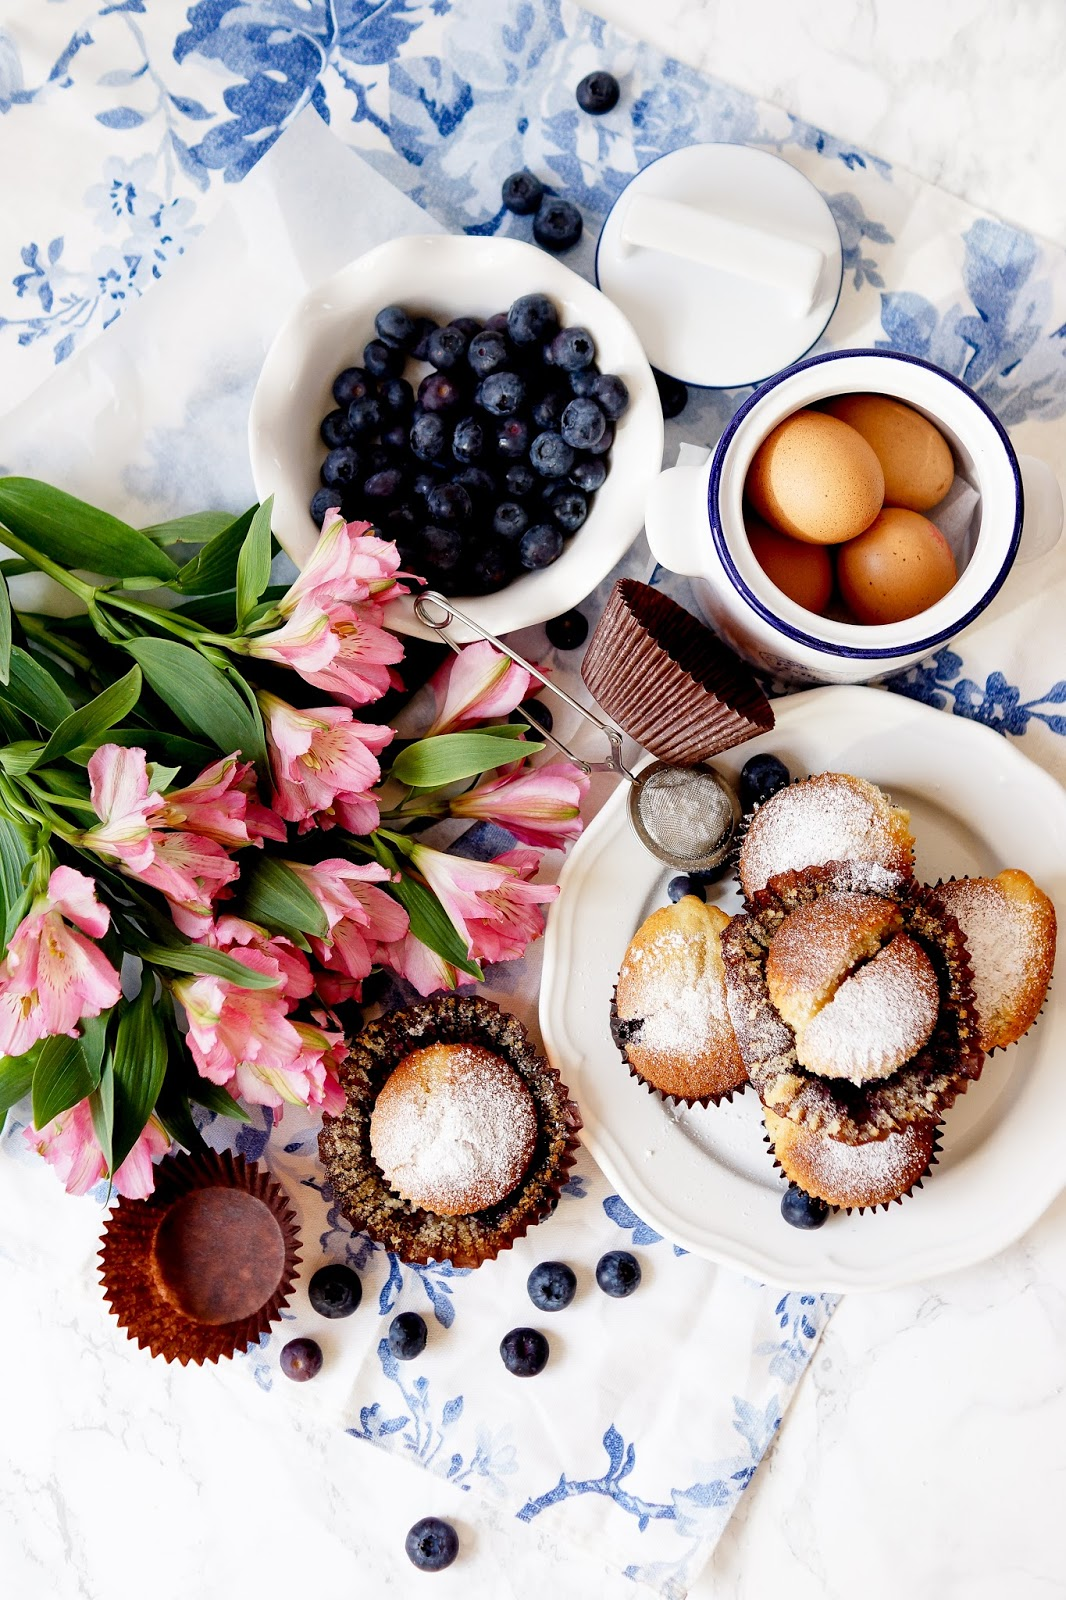 blueberry-cakes-recipe-flatlay-lifestyle